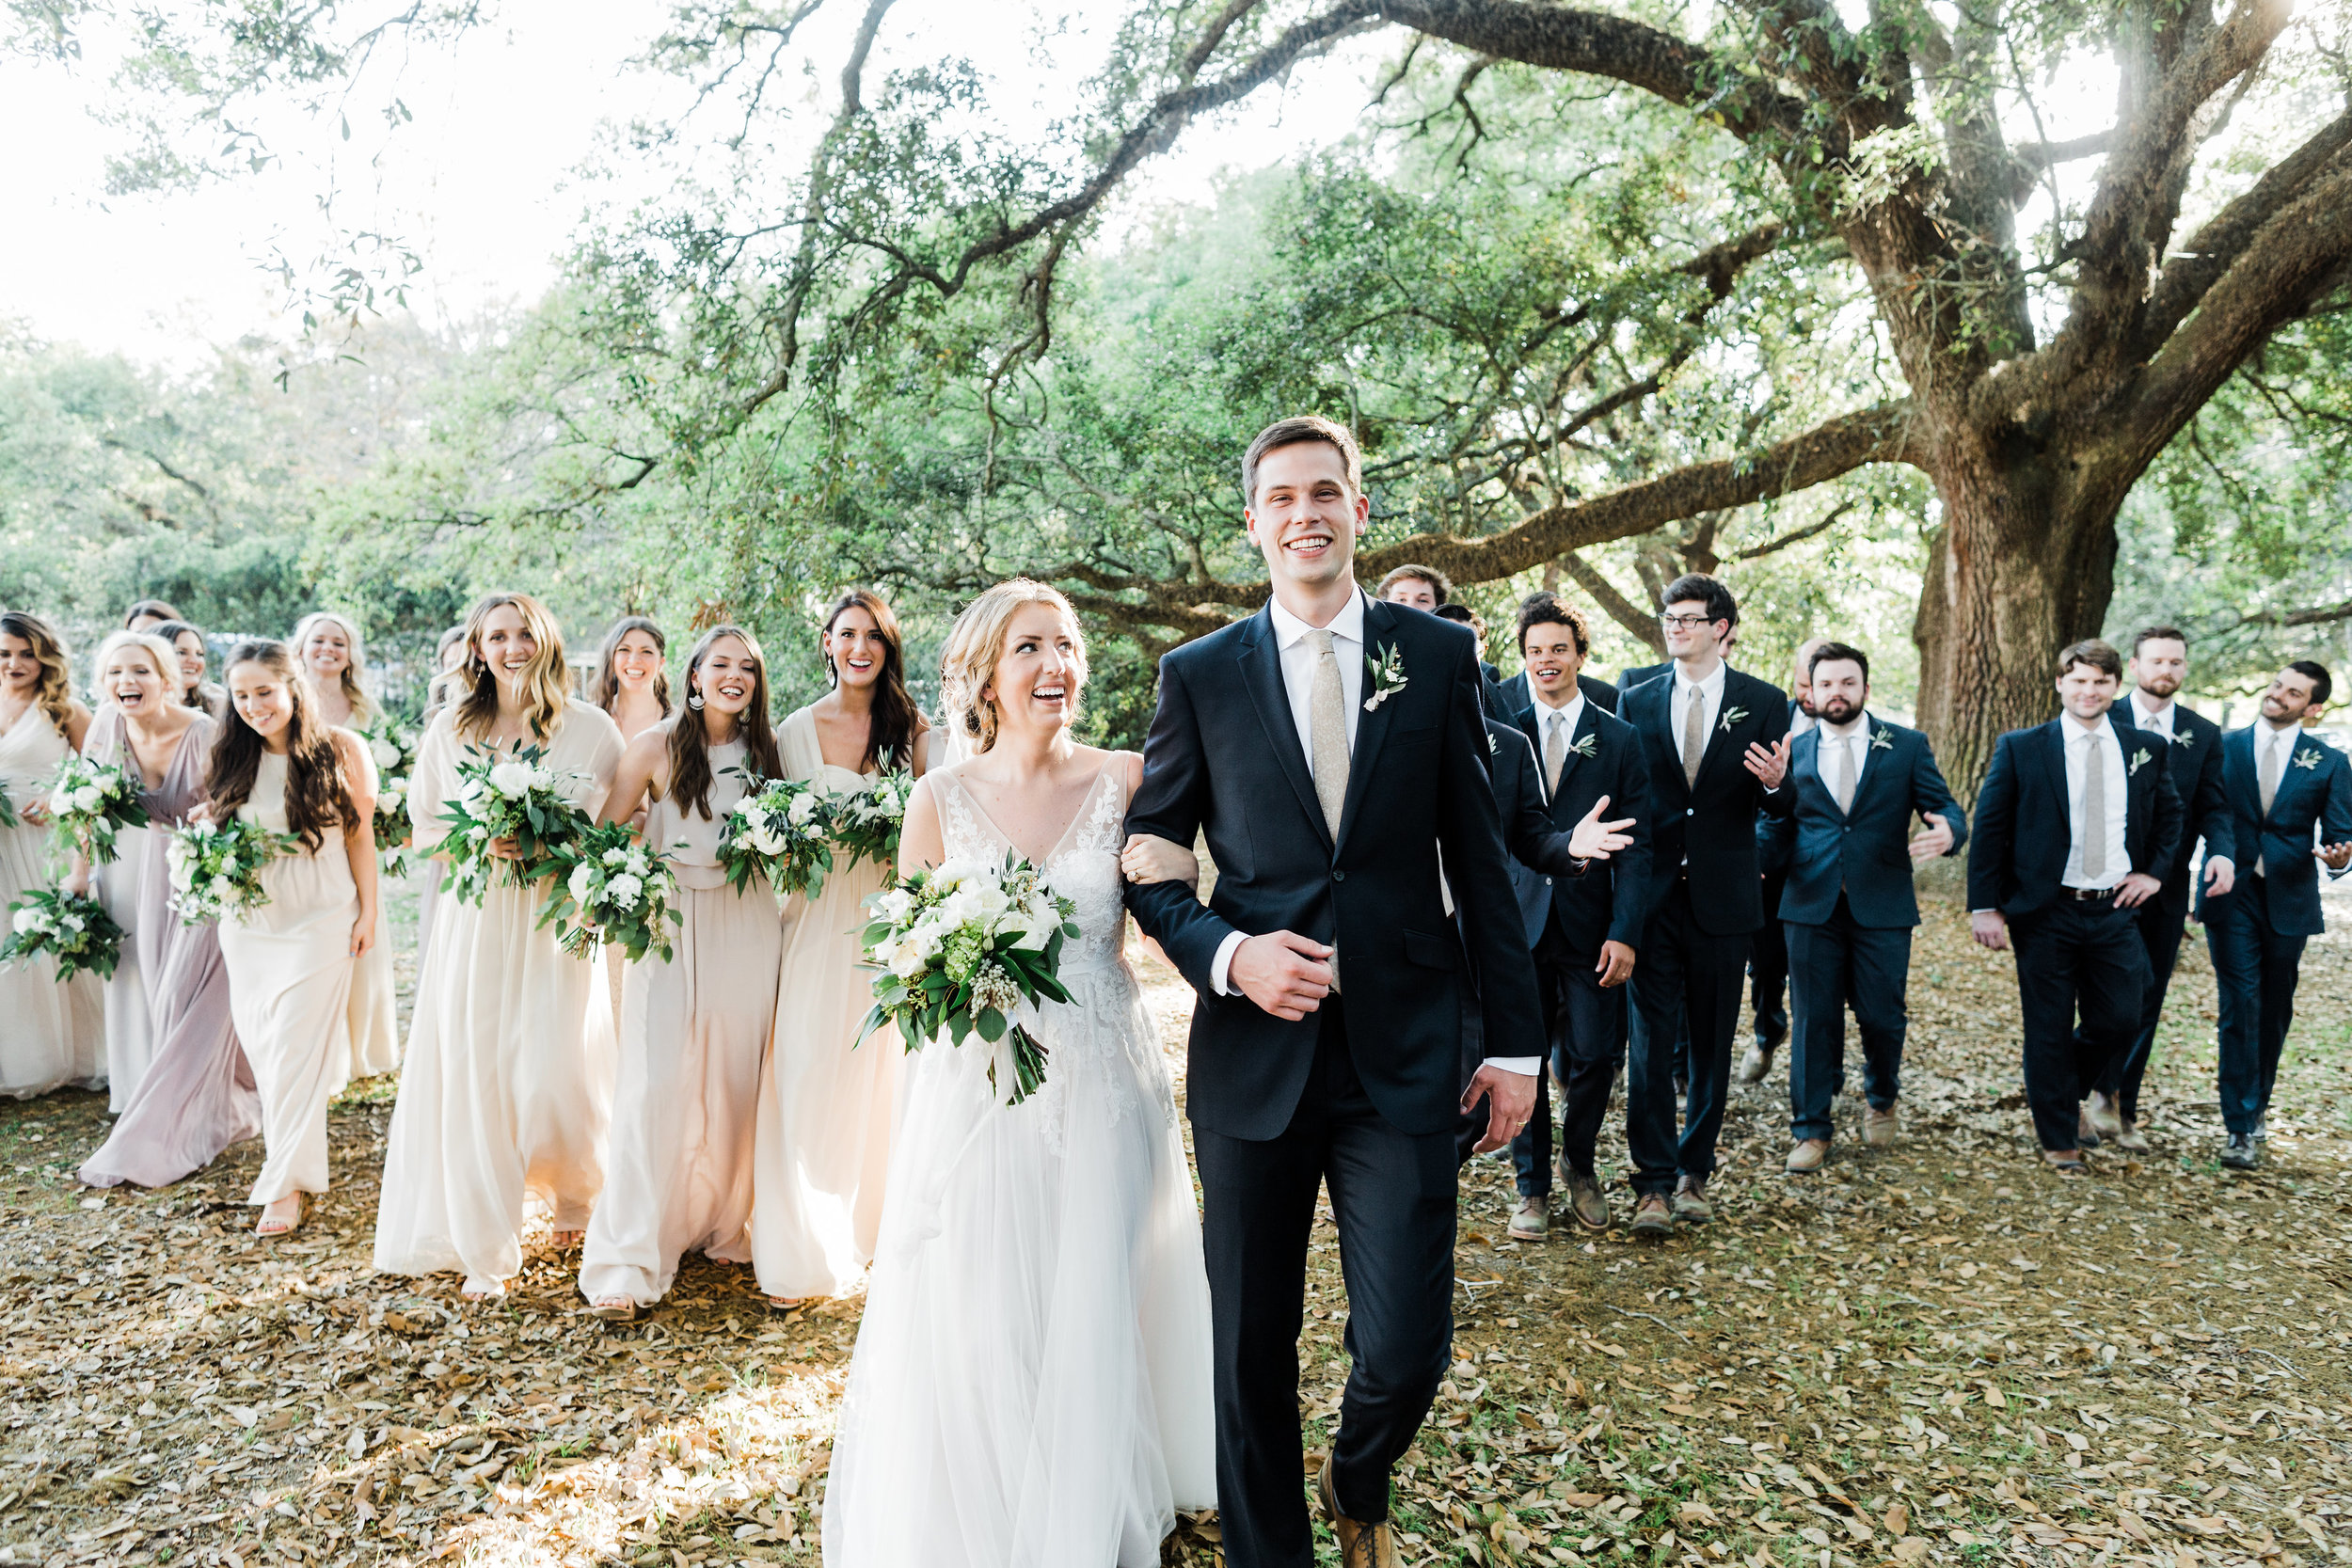 Southern Fete, Southern Wedding, Bridal Party, Bride and Groom, Carolynn Seibert Photography